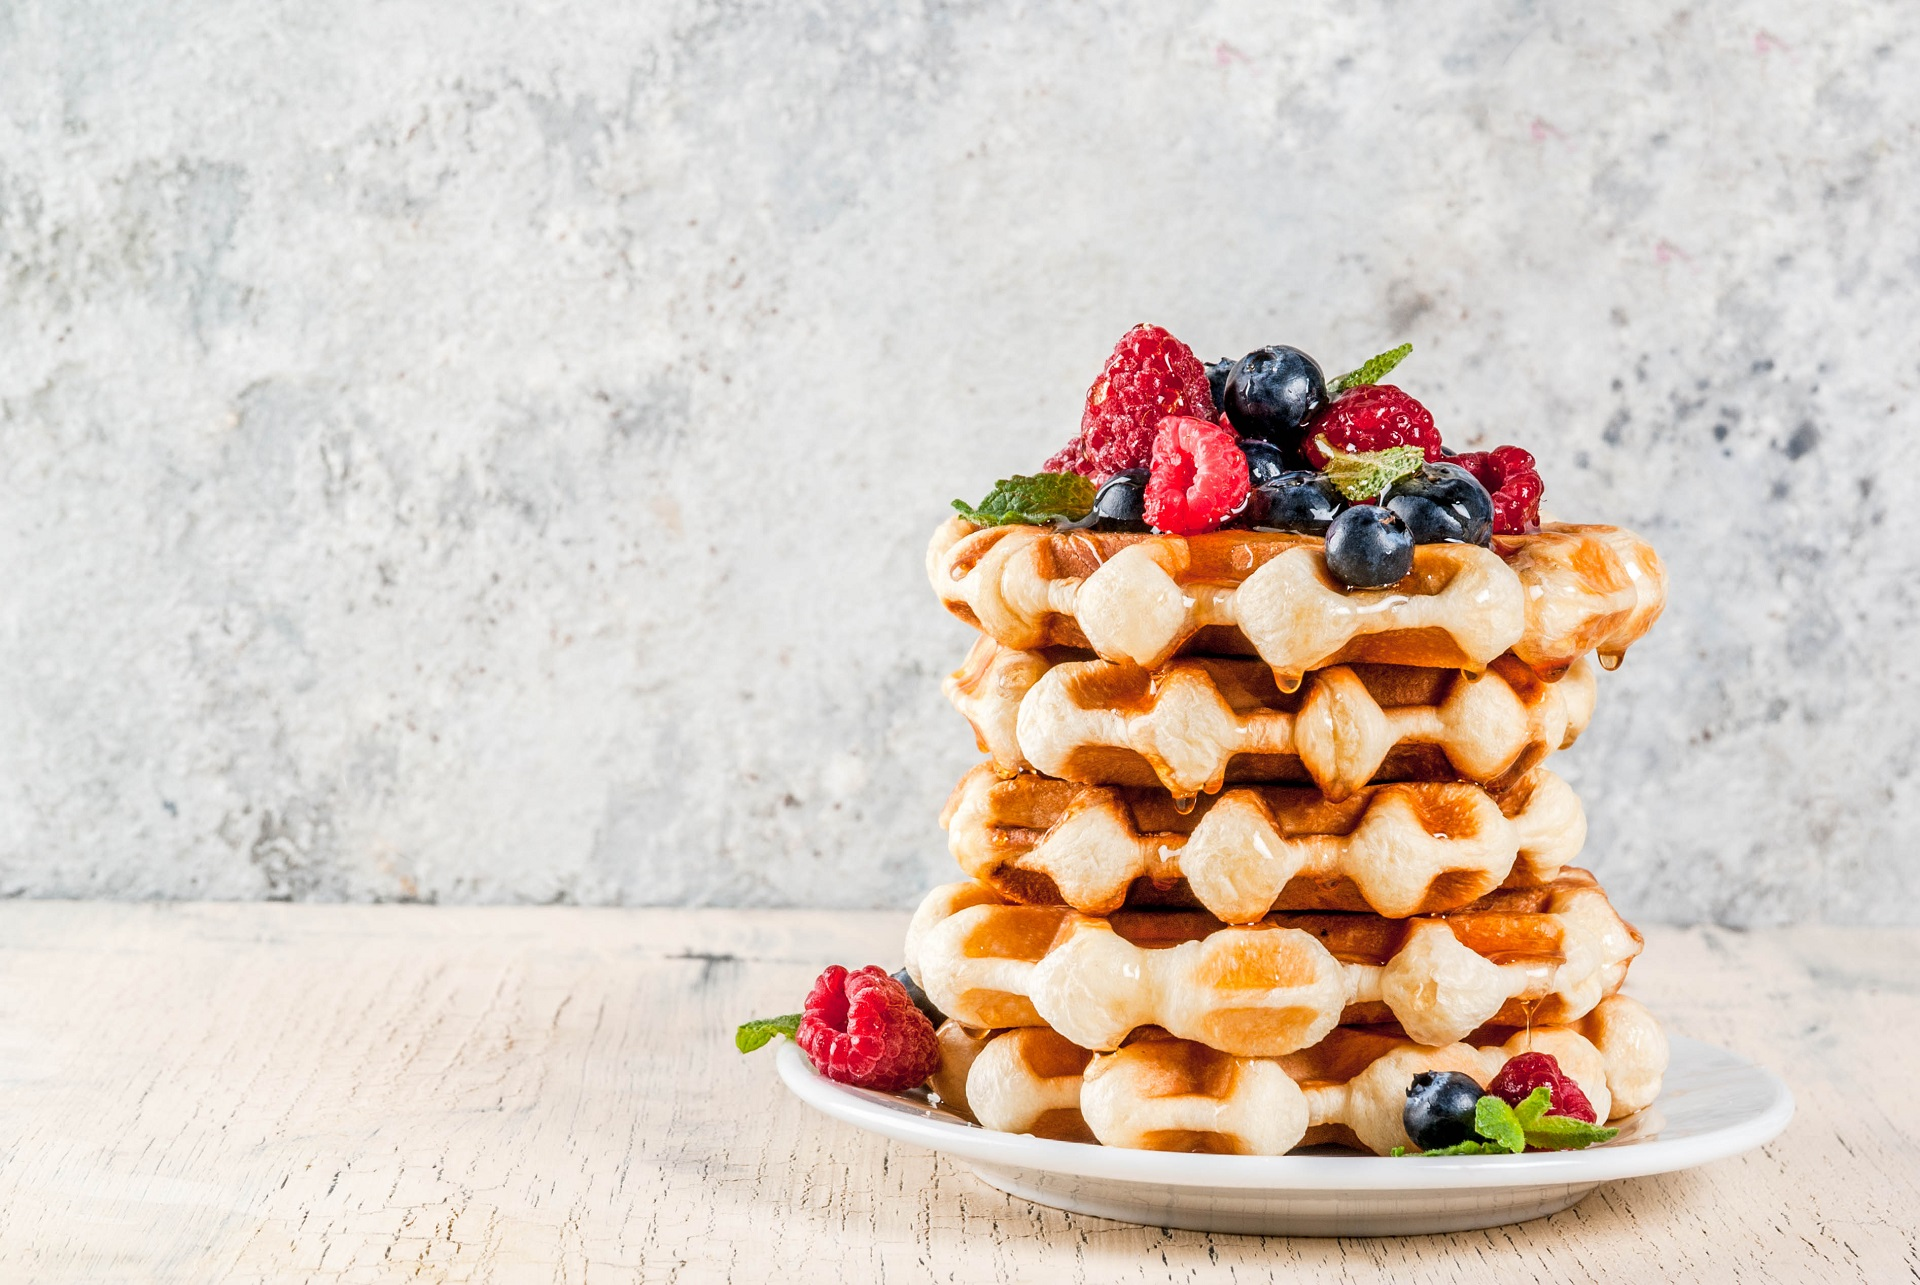 Waffle stack to replace the traditional birthday cake.